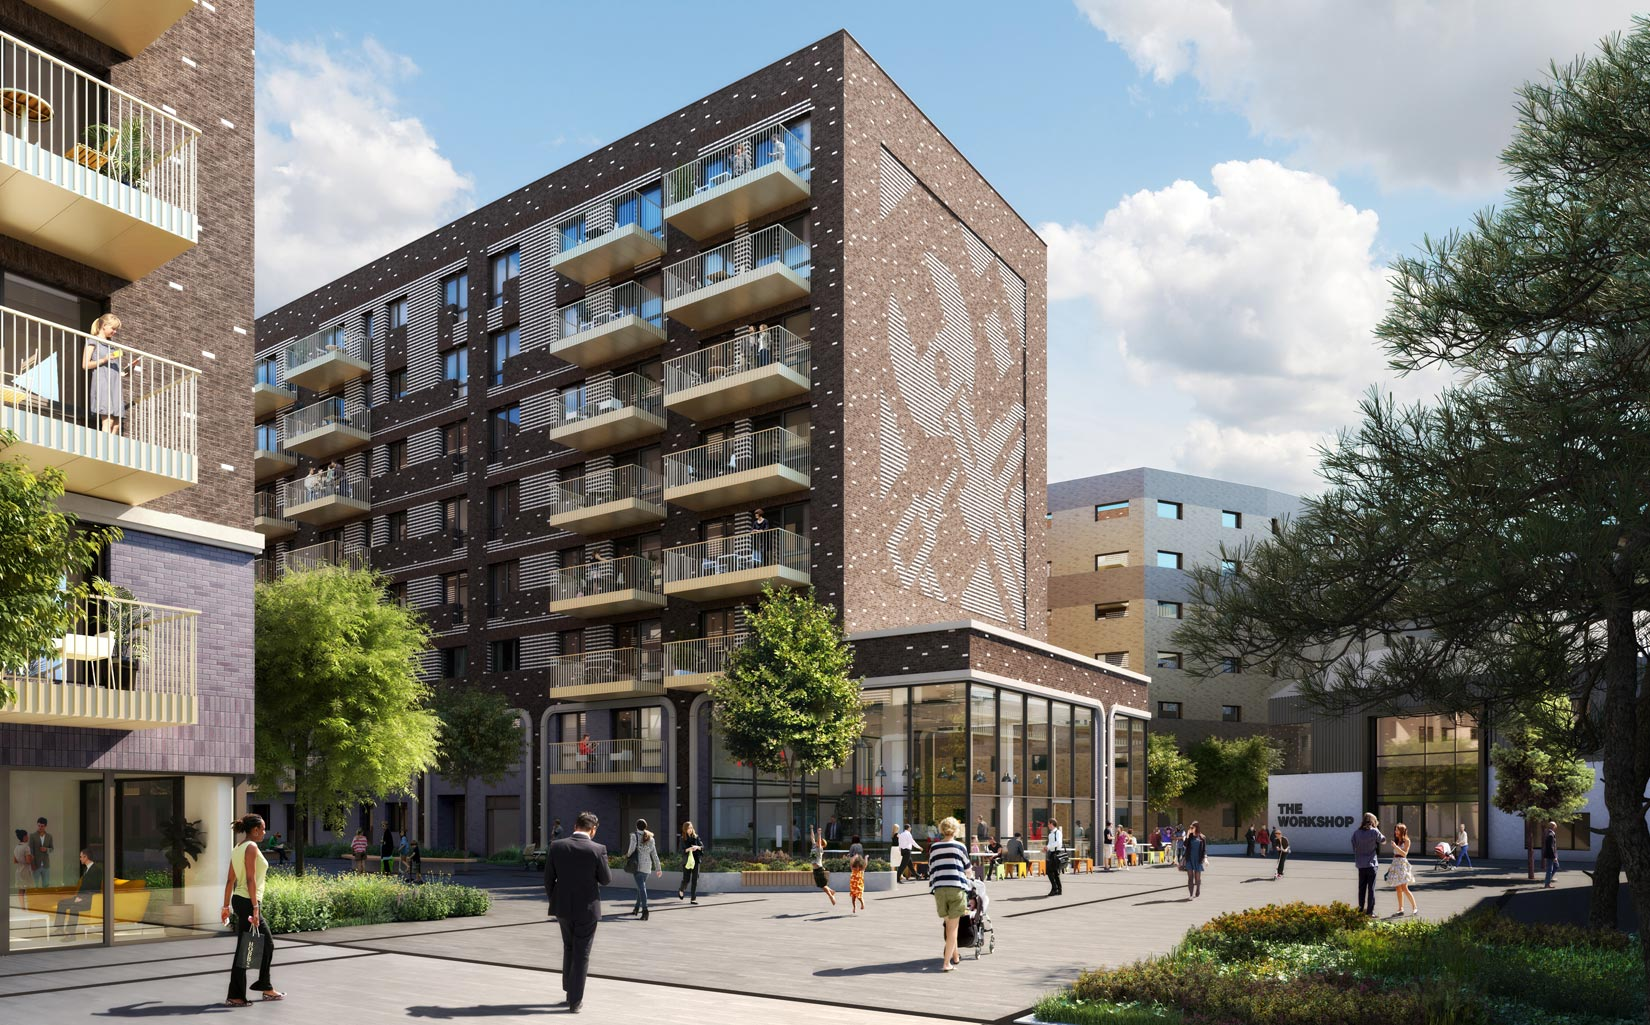 Equipment Works, Walthamstow, London, Homes, Apartments, public realm